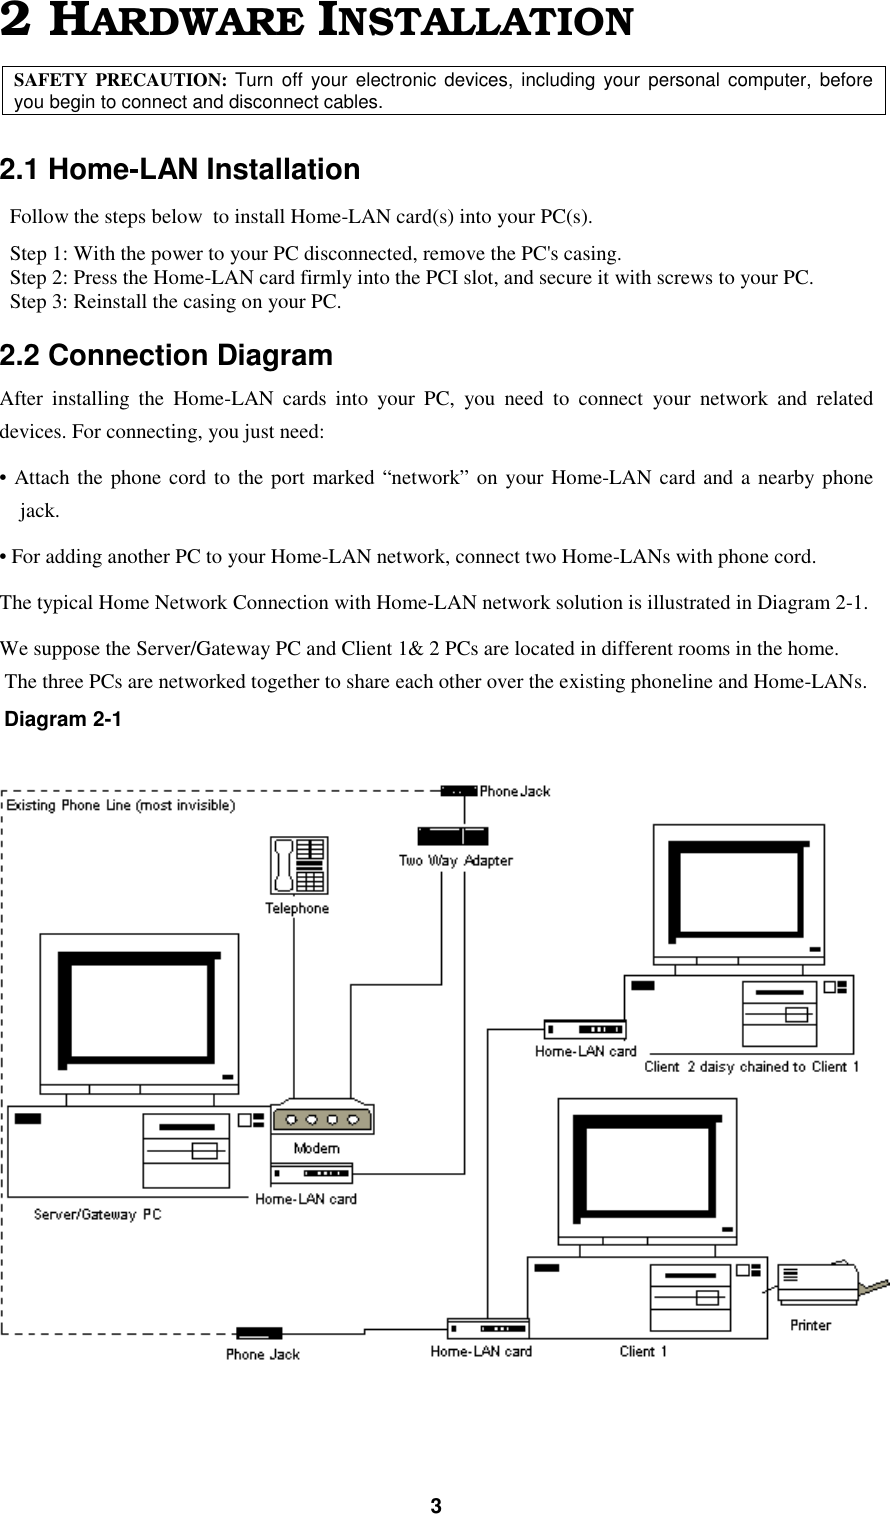 Askey Computer Hnh010d75 Home Lan Modem User Manual Network Connection Diagram 32 Hardware Installationsafety Precaution Turn Off Your Electronic Devices Including Personal